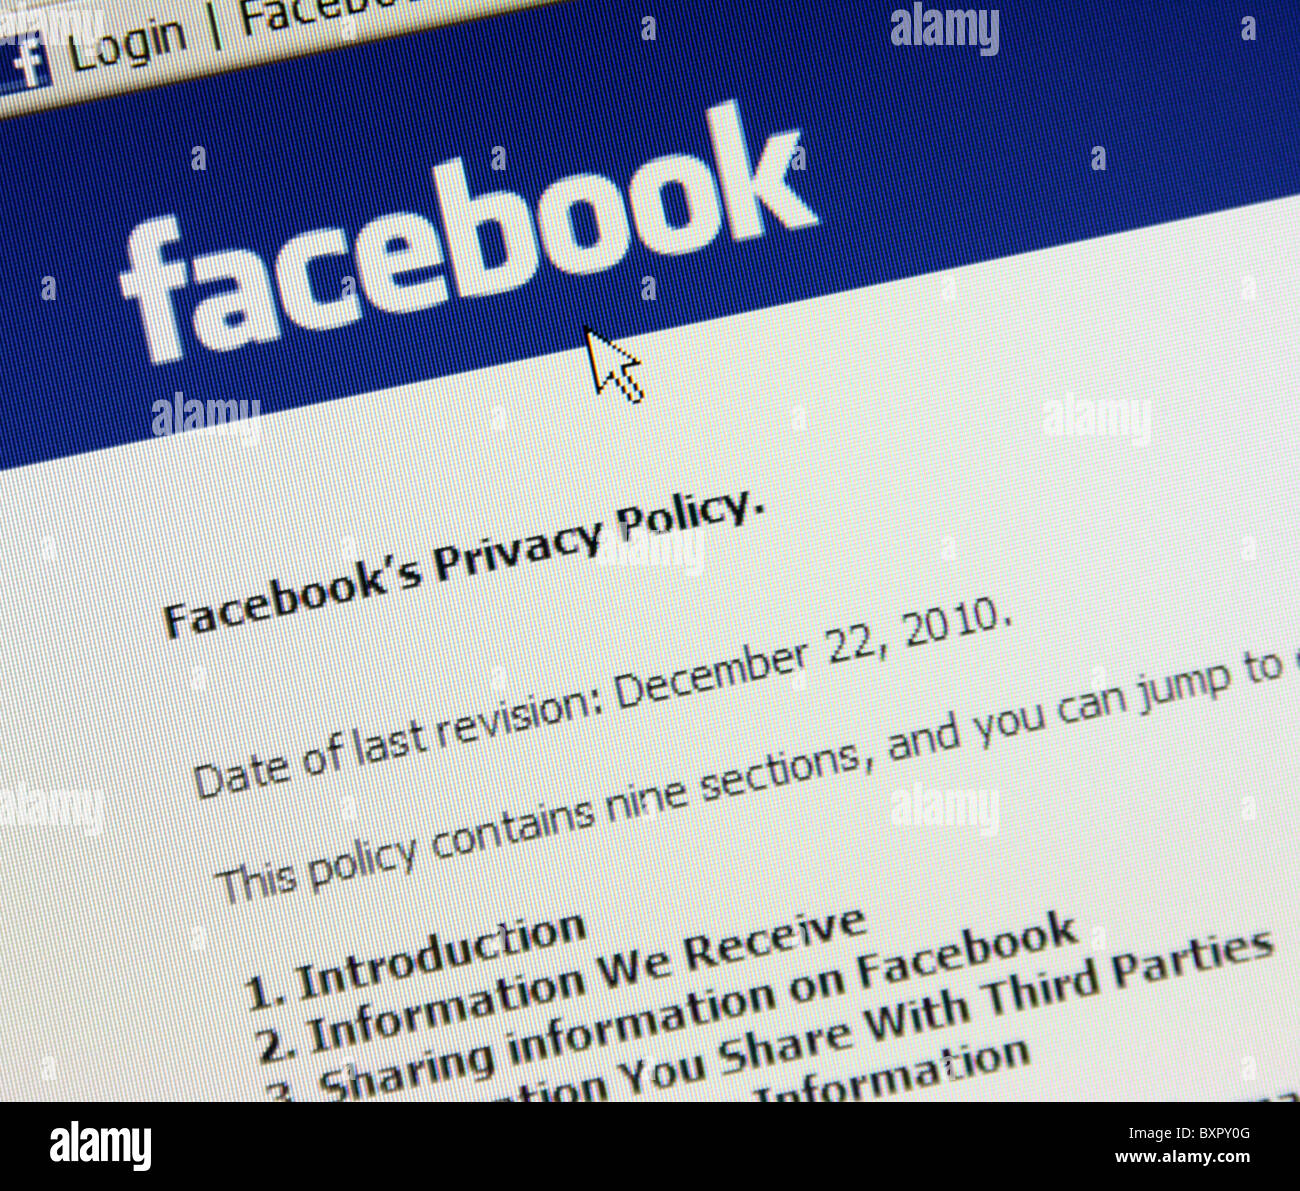 Facebook privacy policy 2010 - Stock Image